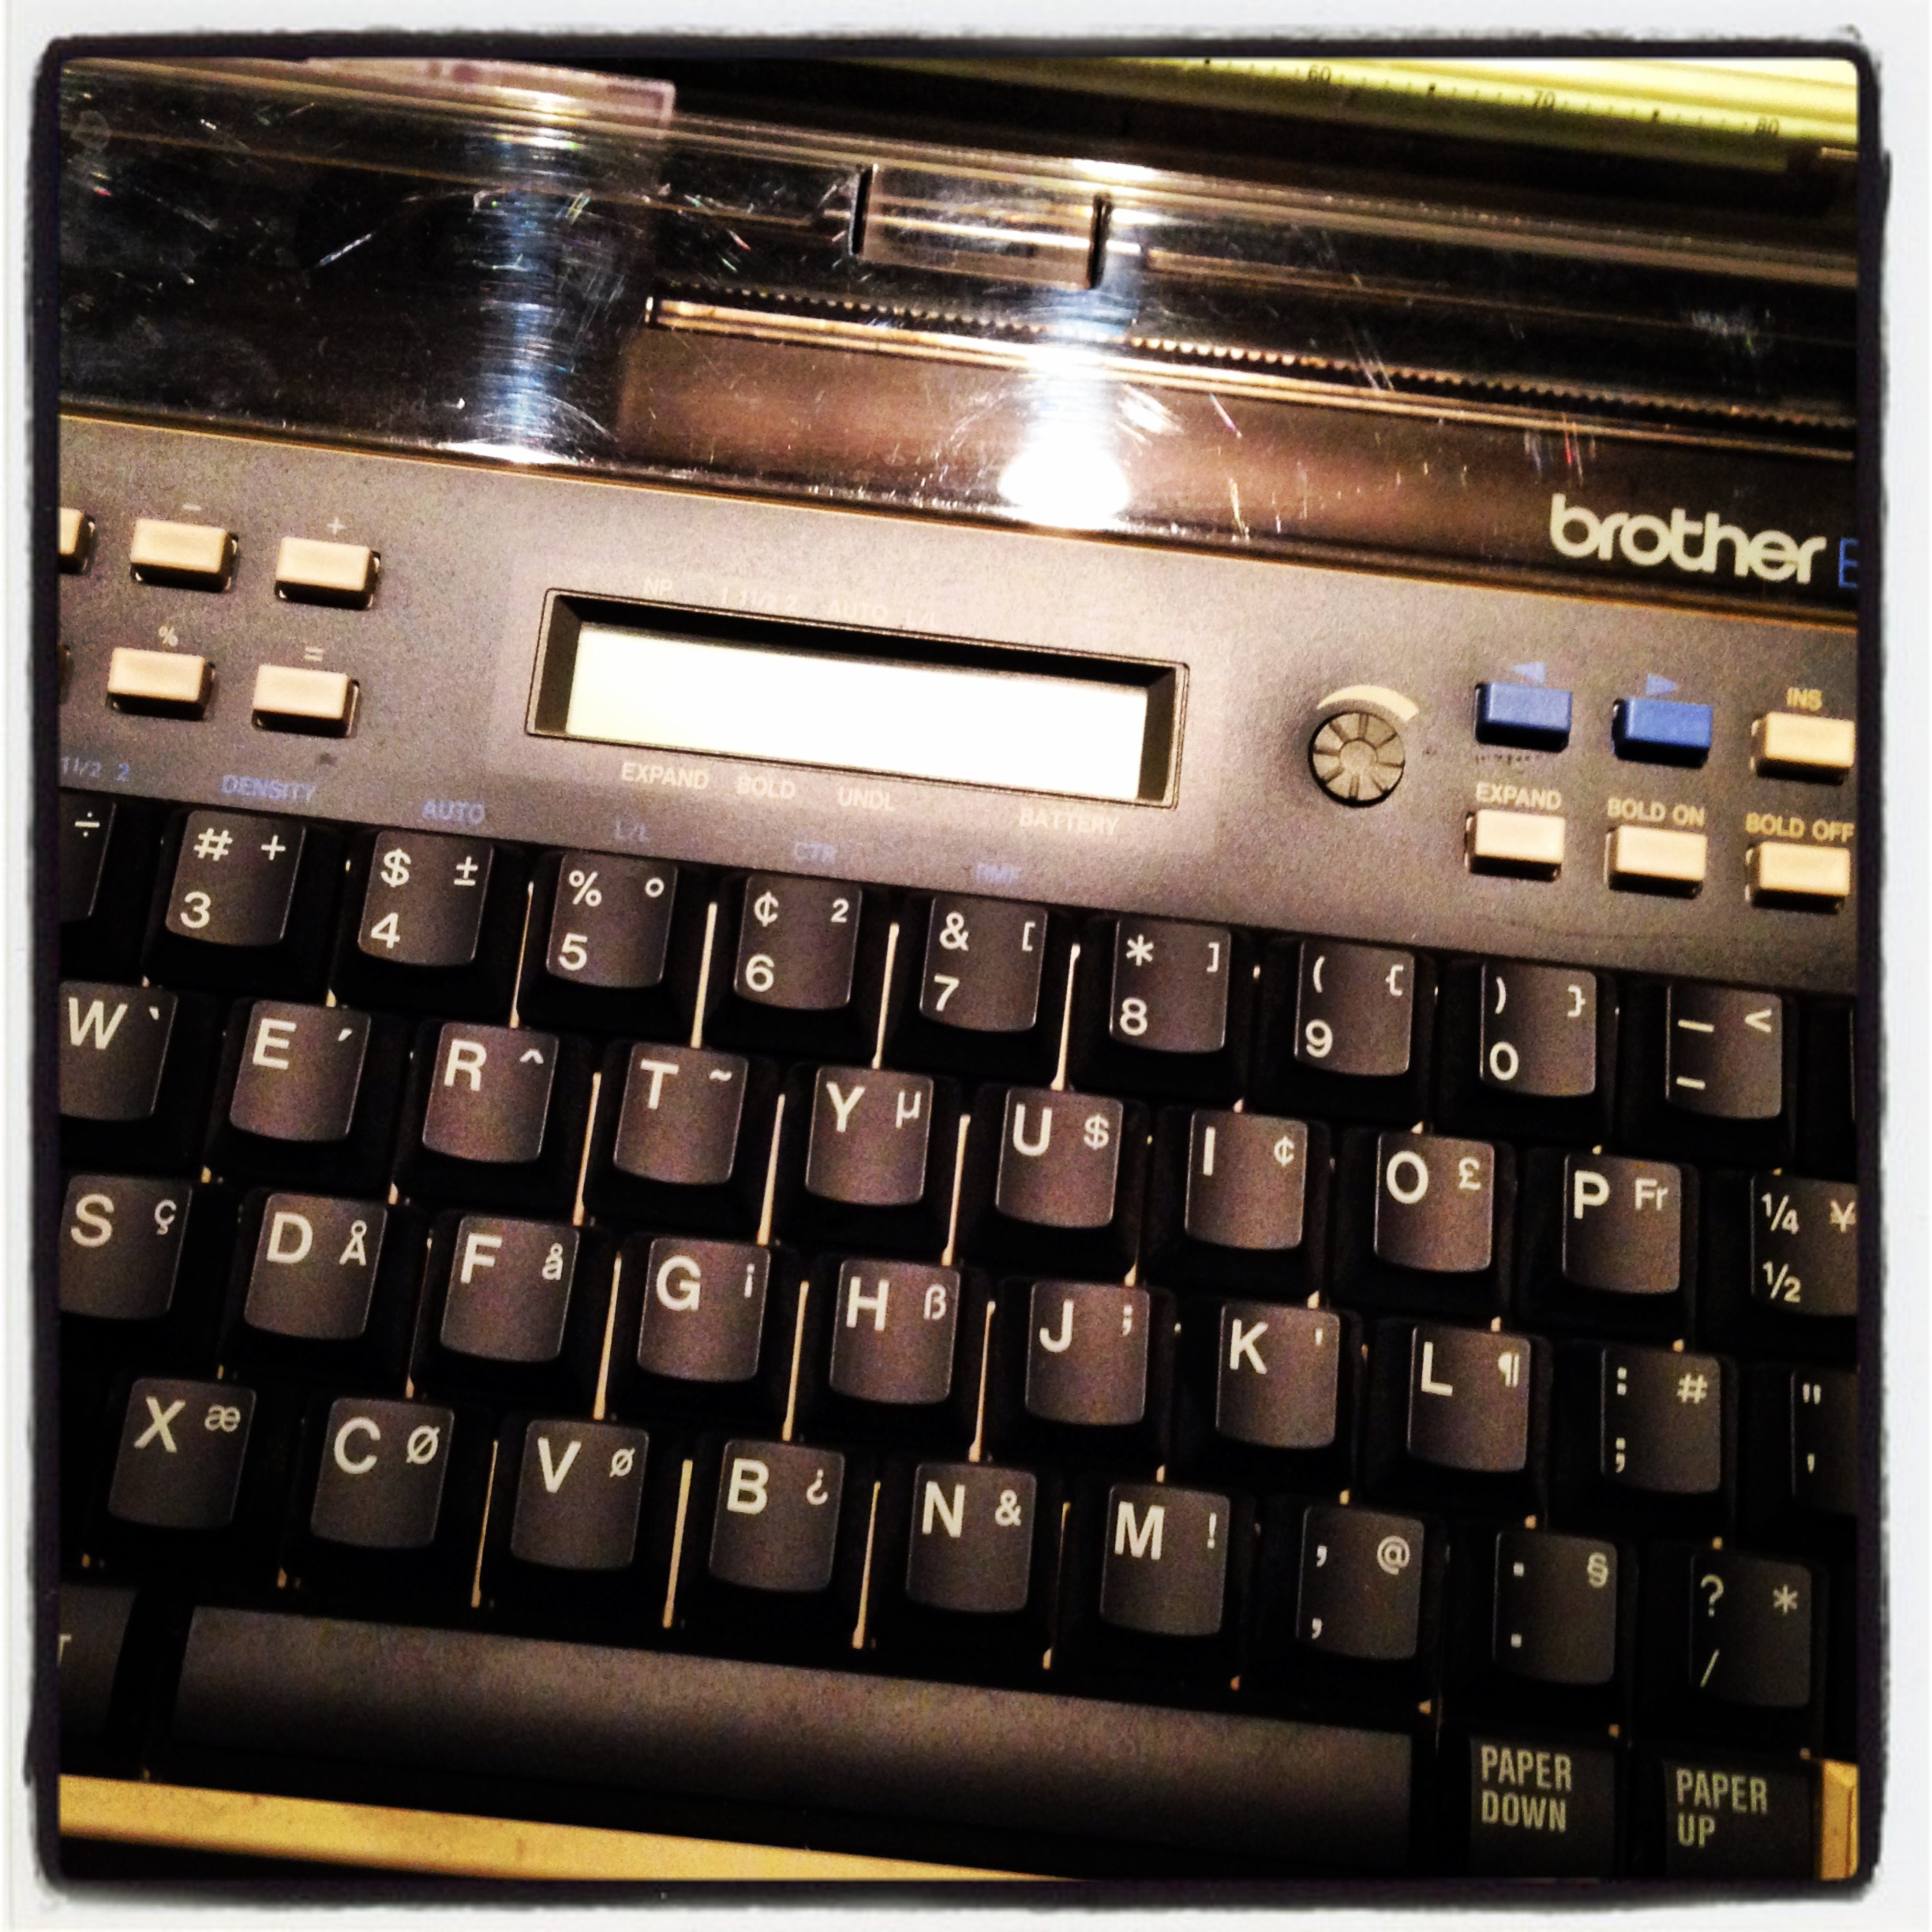 I also just got this sweet 1985 Word Processor, though I haven't quite figured out how to fit it into my workflow yet.